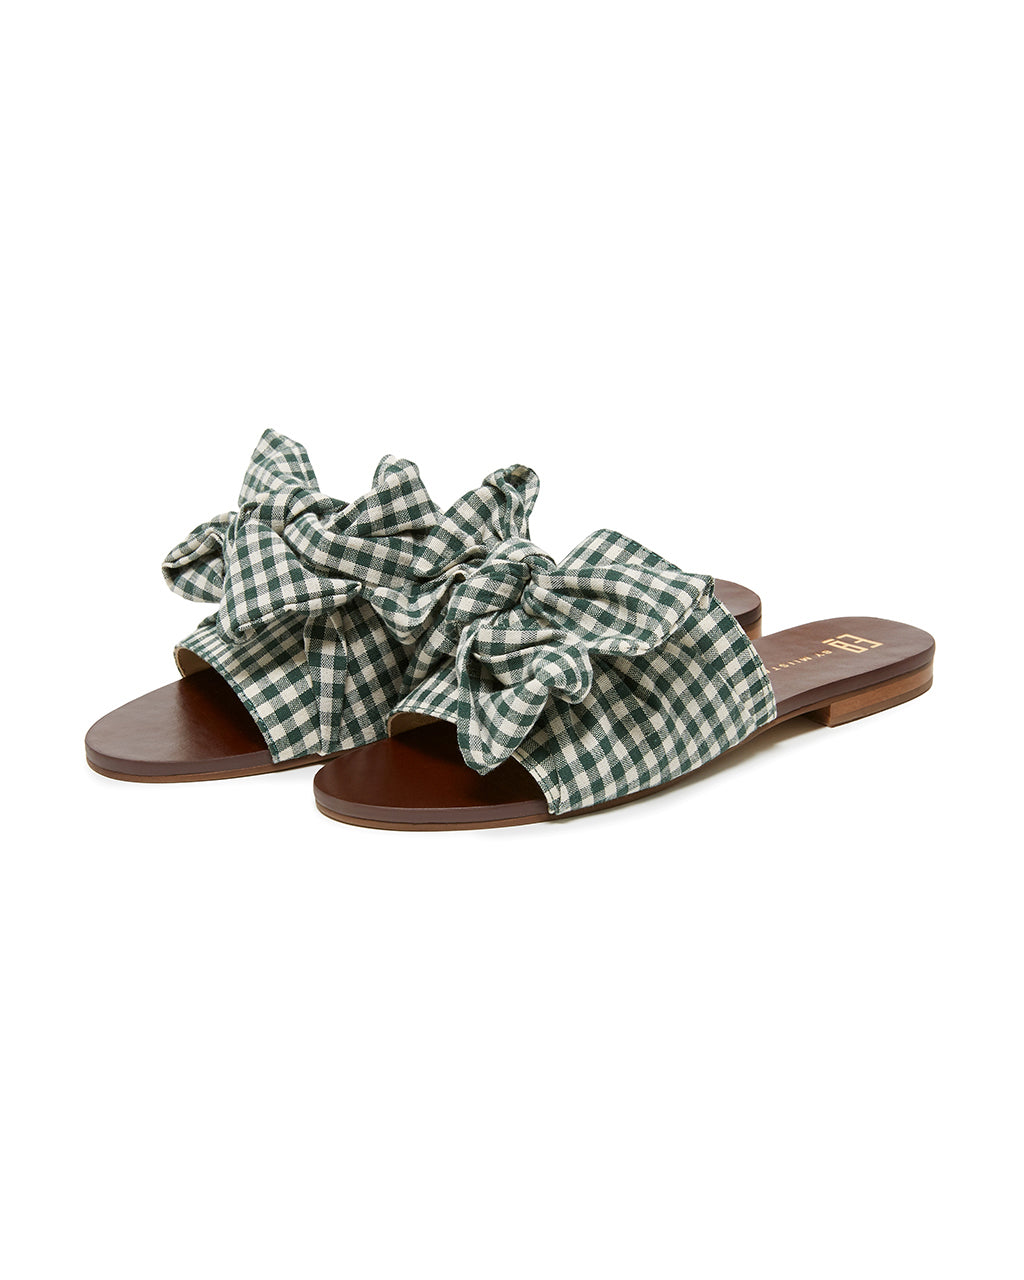 flat backless sandals with fabric dark green gingham uppers